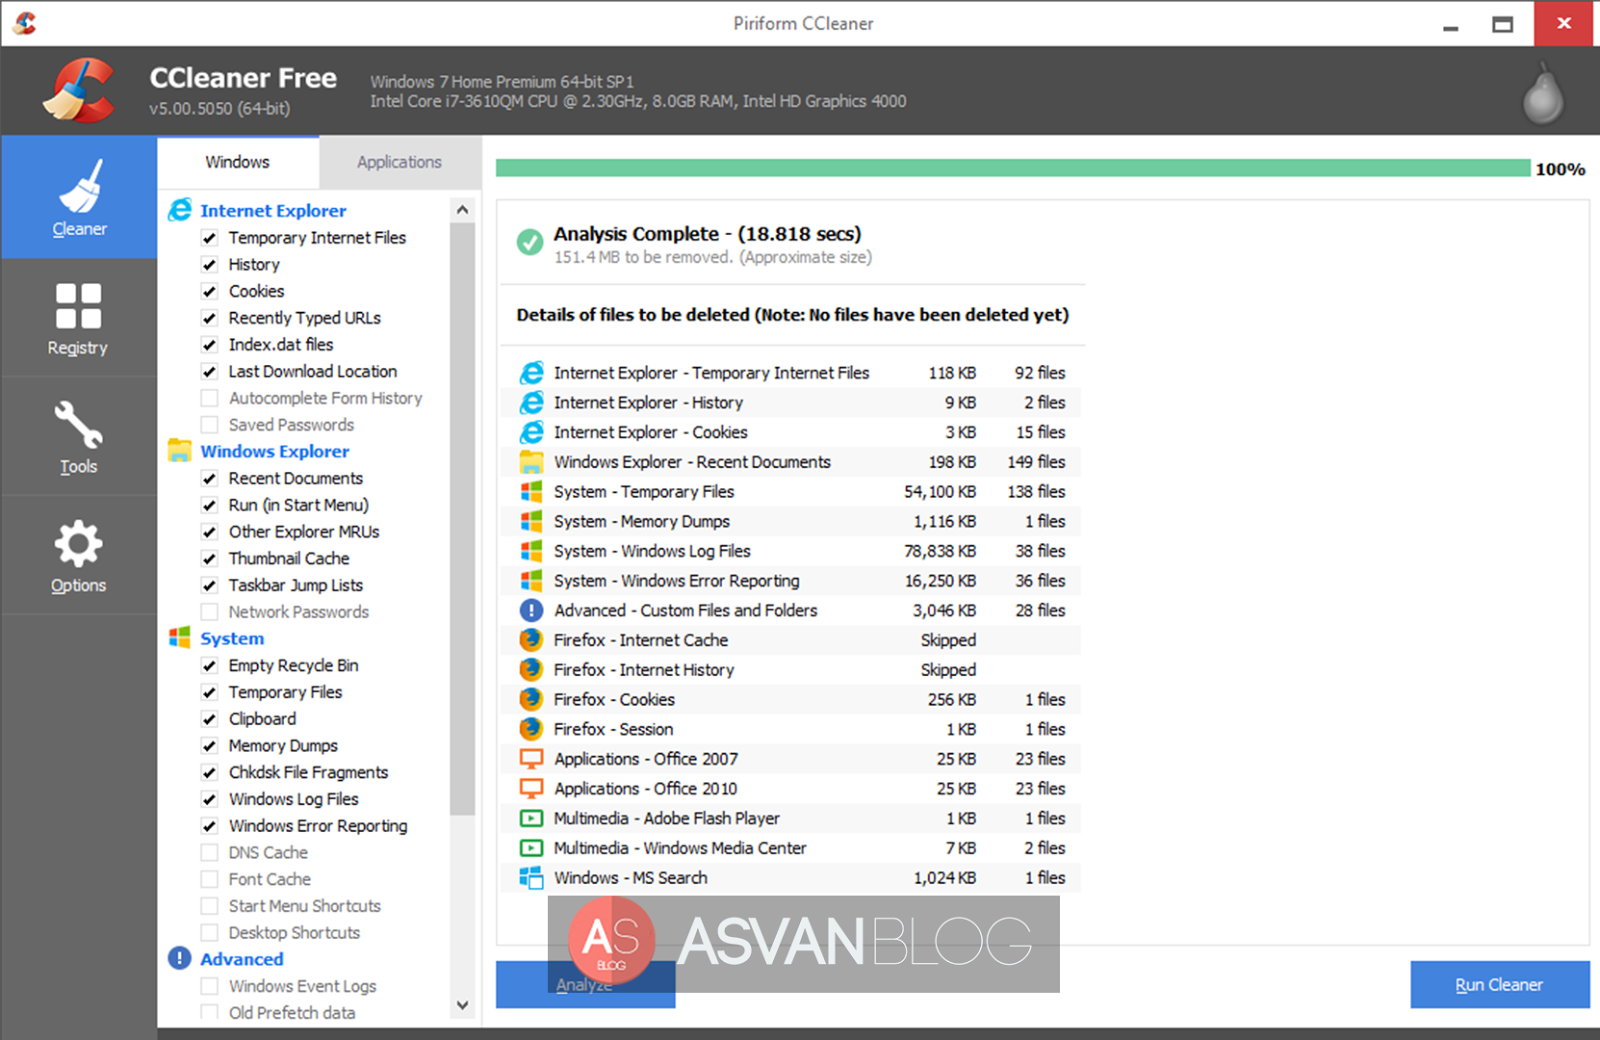 Download ccleaner free zip